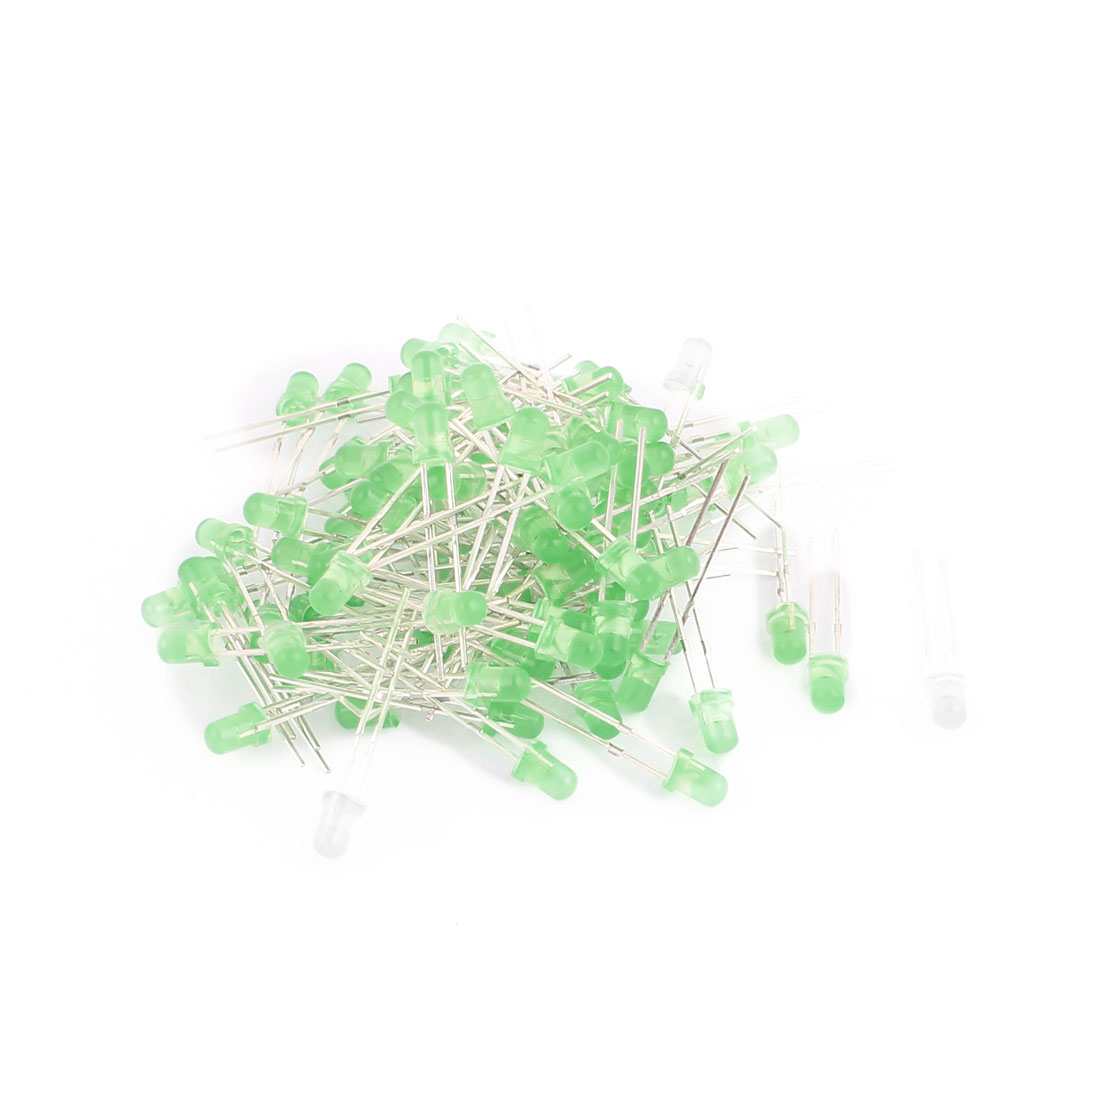 2 Terminals Green Light Emitting Diode 3mm Green LED Bulb 100pcs for LED Lamp